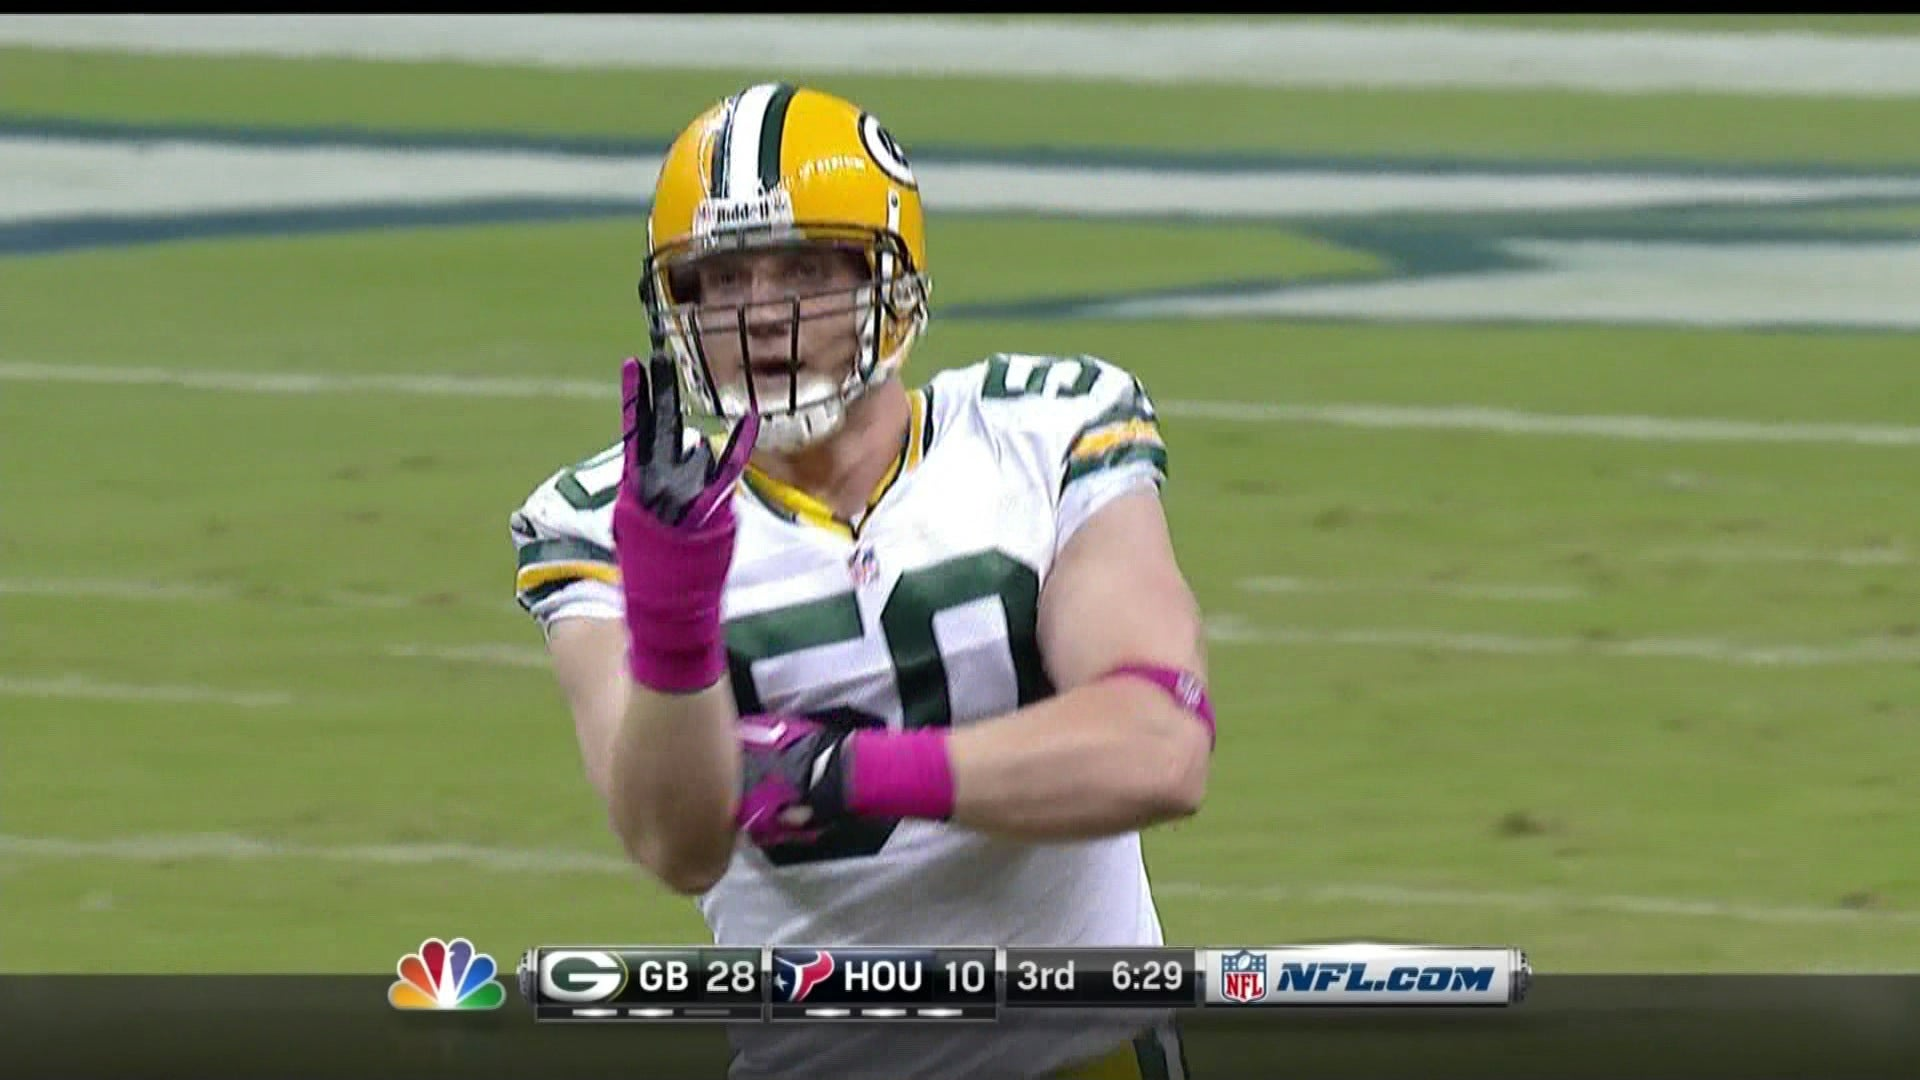 Aaron Rodgers Threw For Six Touchdowns, But It Was A.J. Hawk's Performance That Was Truly Shocking